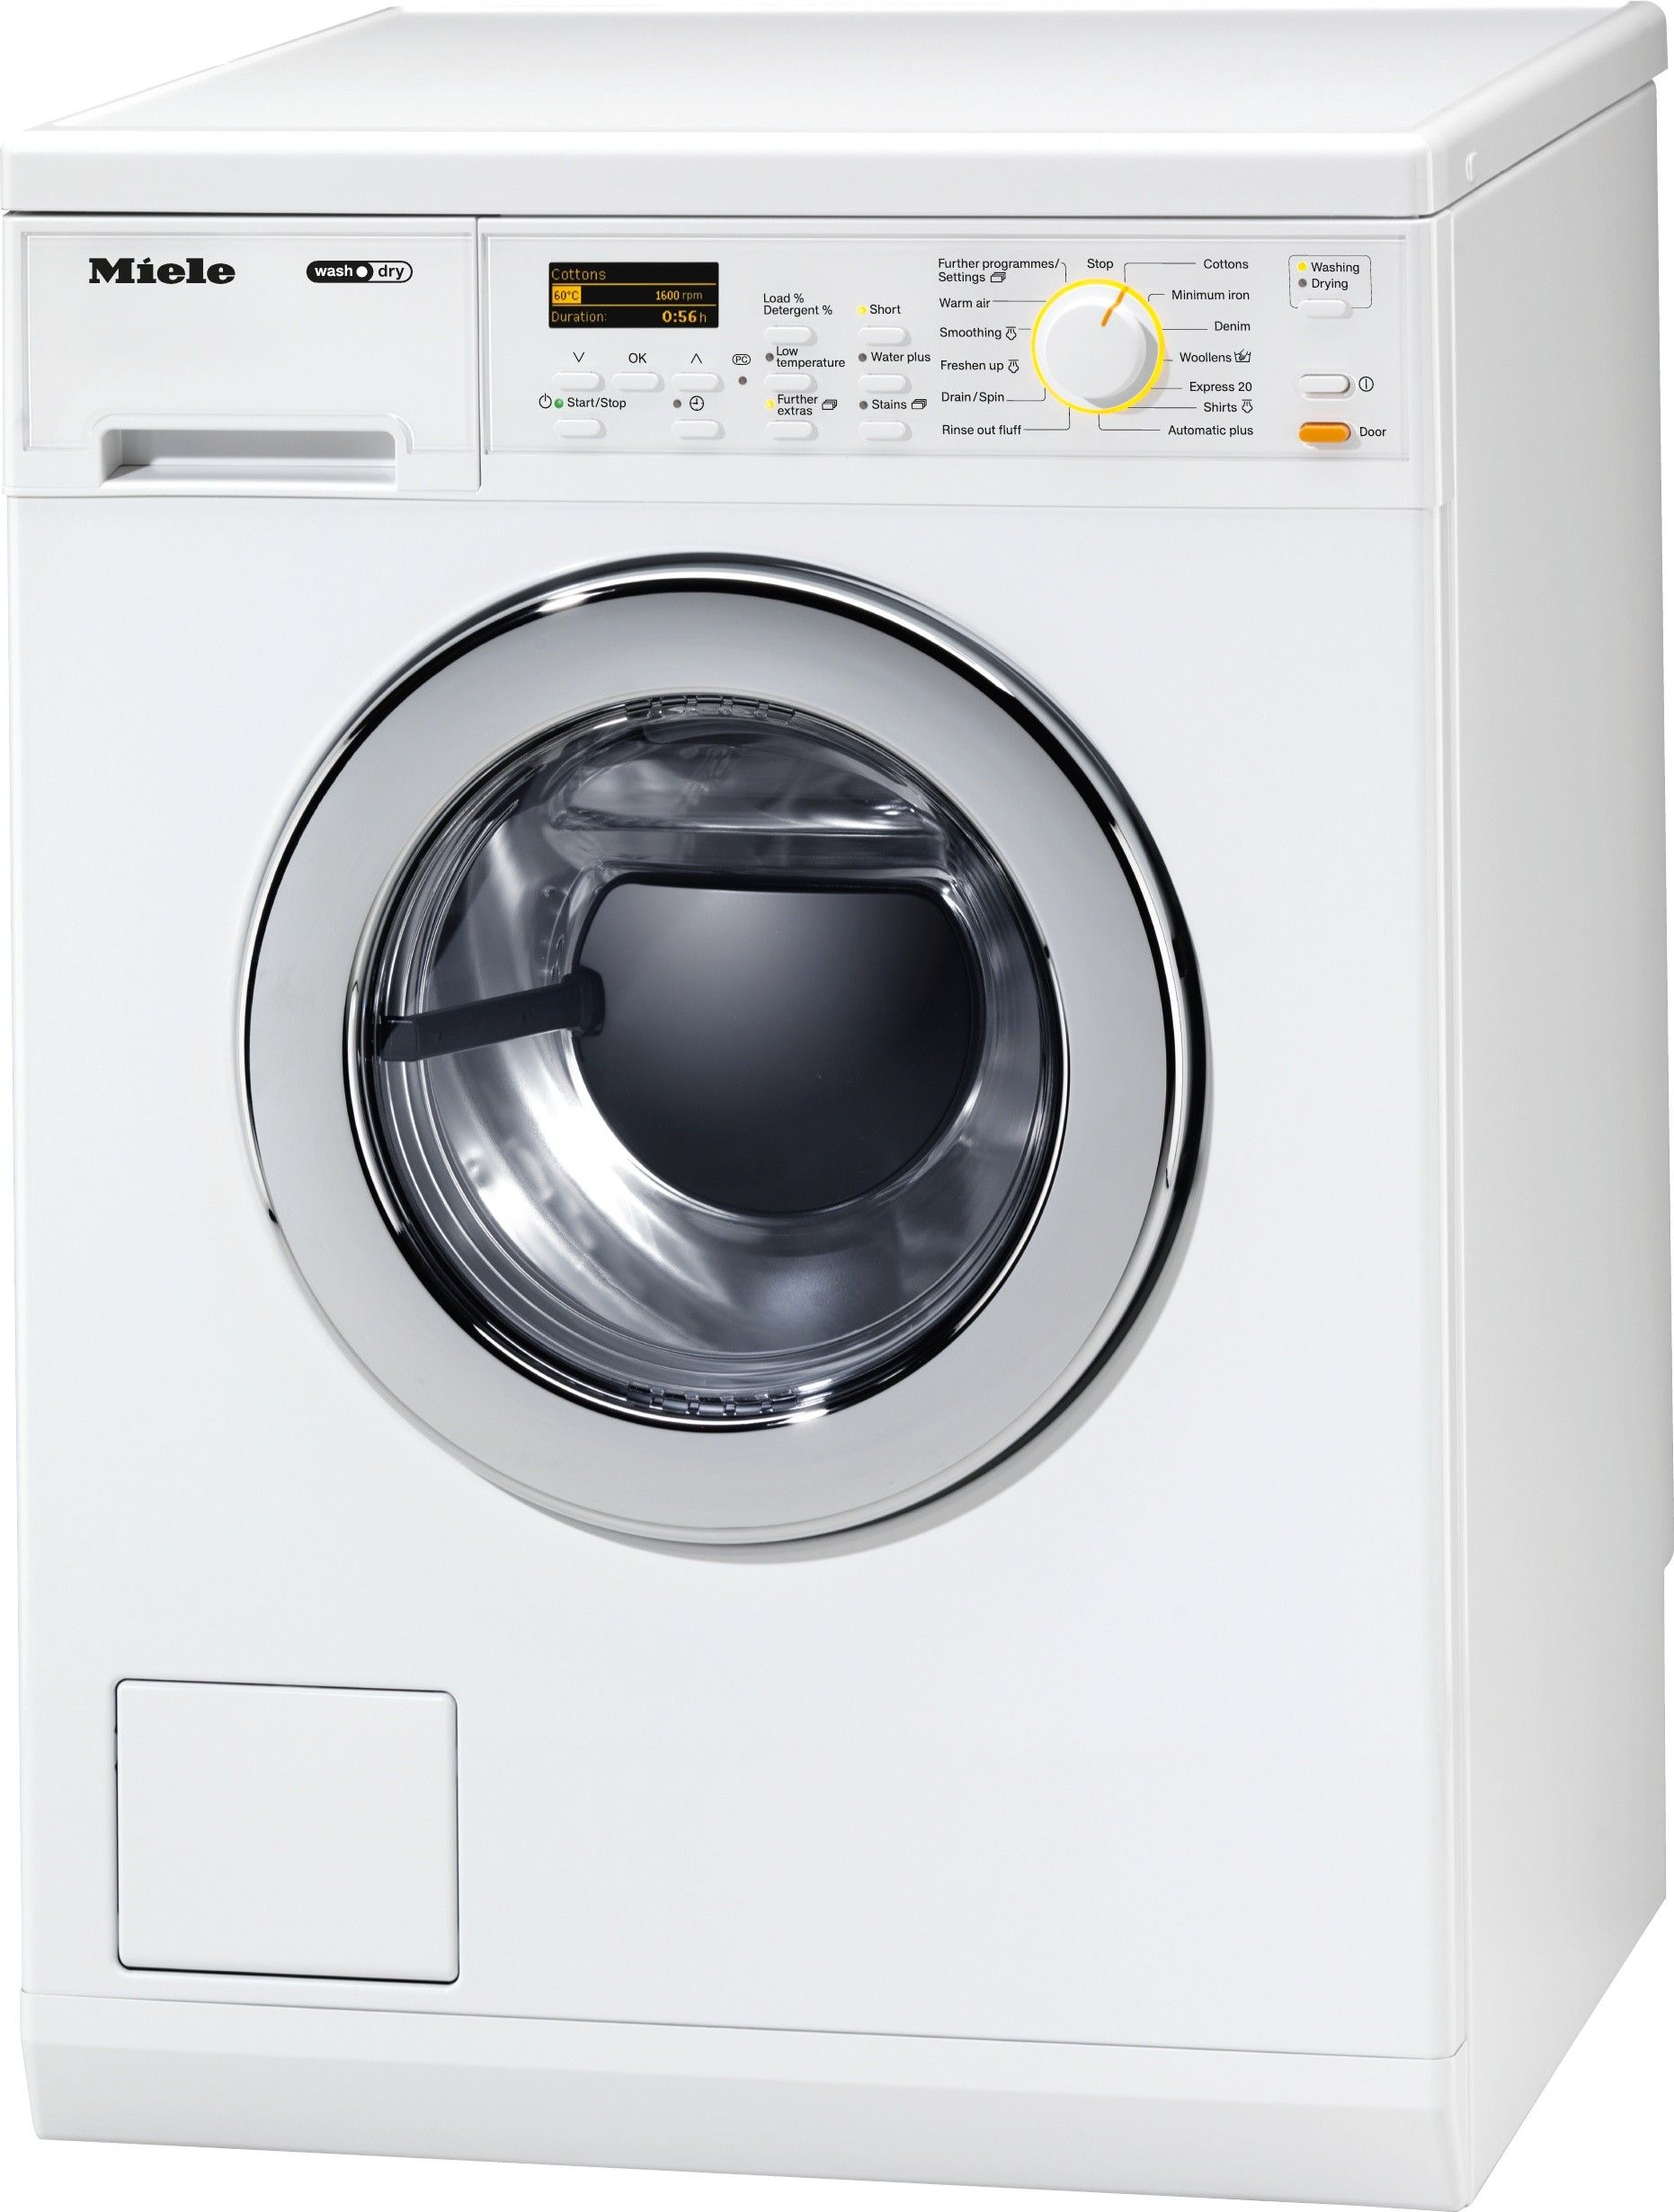 Miele Washer Dryer With Stains Option For Optimum Results And Maximum Convenience Wt27969 Washe Miele Washer Dryer Washer And Dryer Combination Washer Dryer